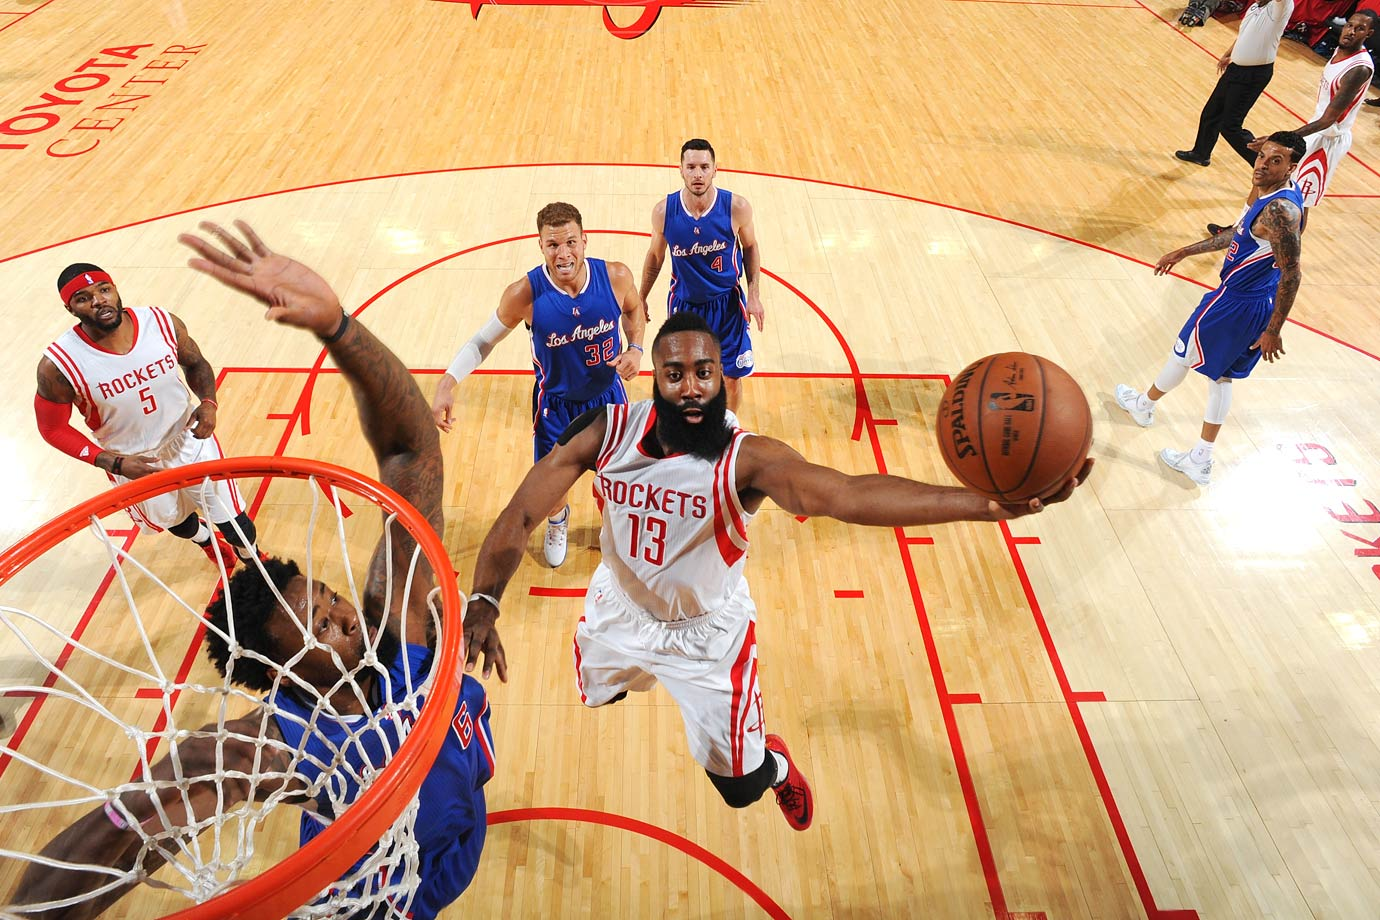 Houston overcame a 19-point third-quarter deficit in Game 6, and James Harden scored 31 points in the Rockets' 113-100 Game 7 victory over the Clippers, sending them to the conference finals for the first time since 1997.